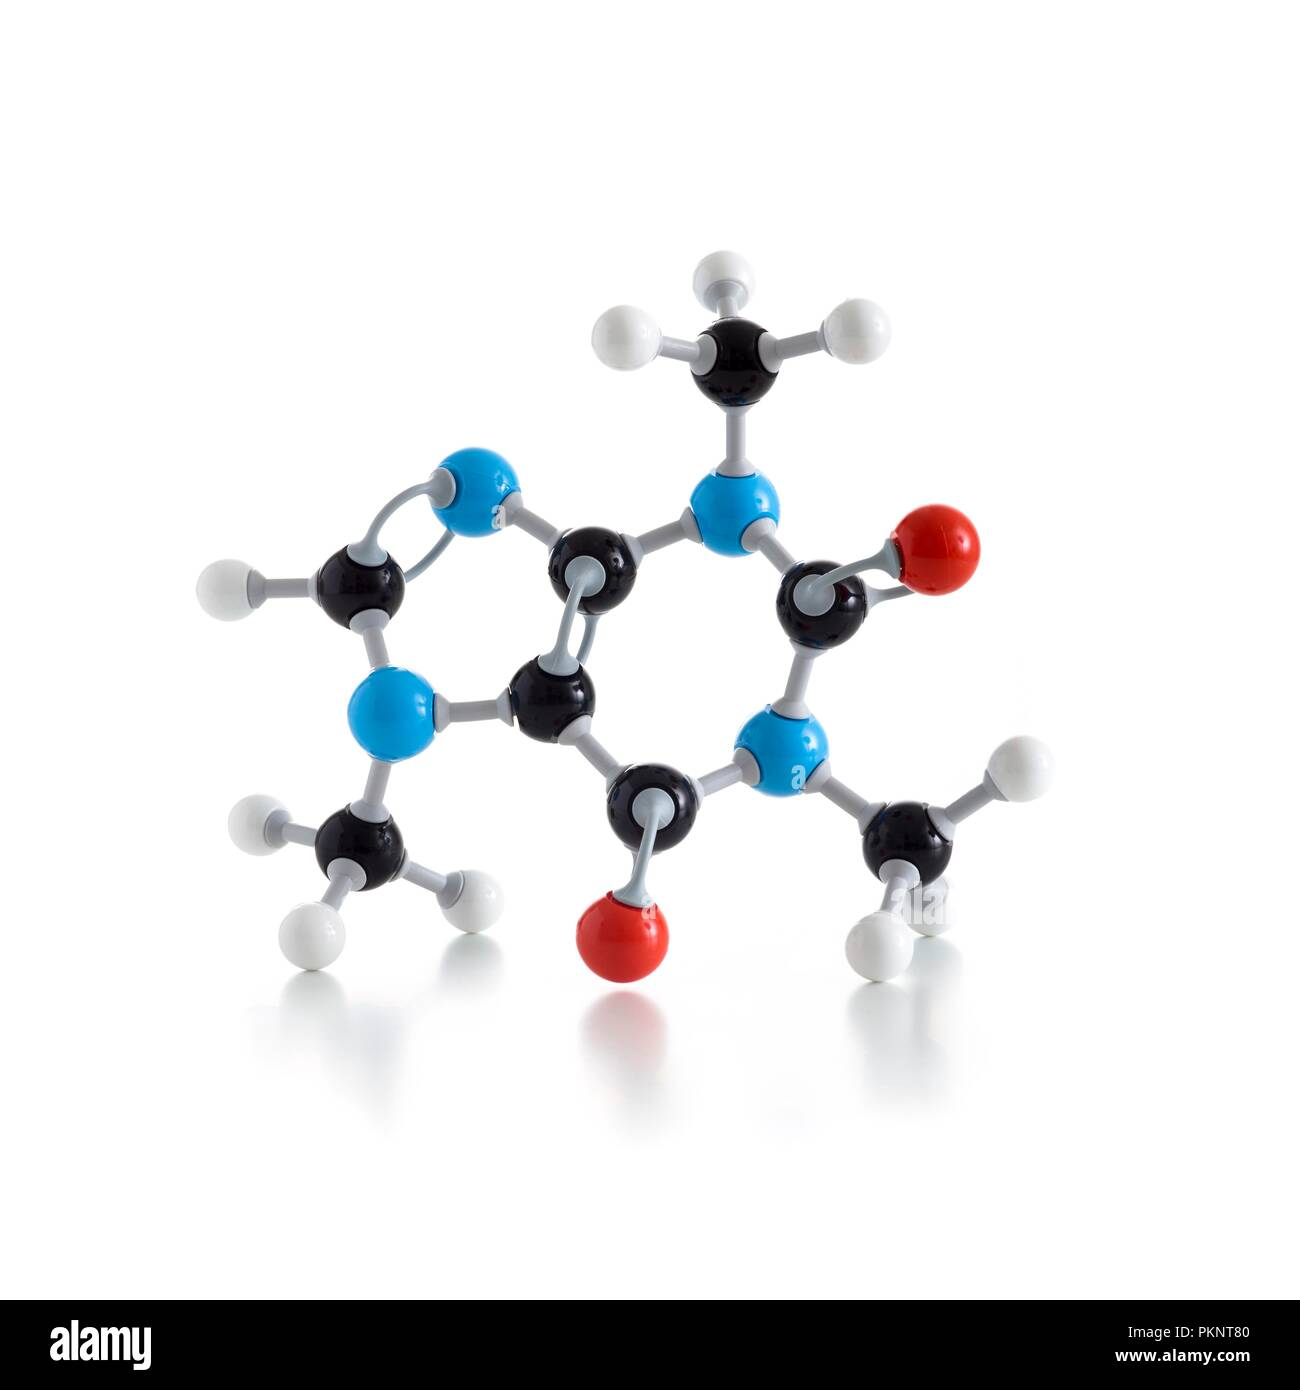 Molecular model against a white background. - Stock Image